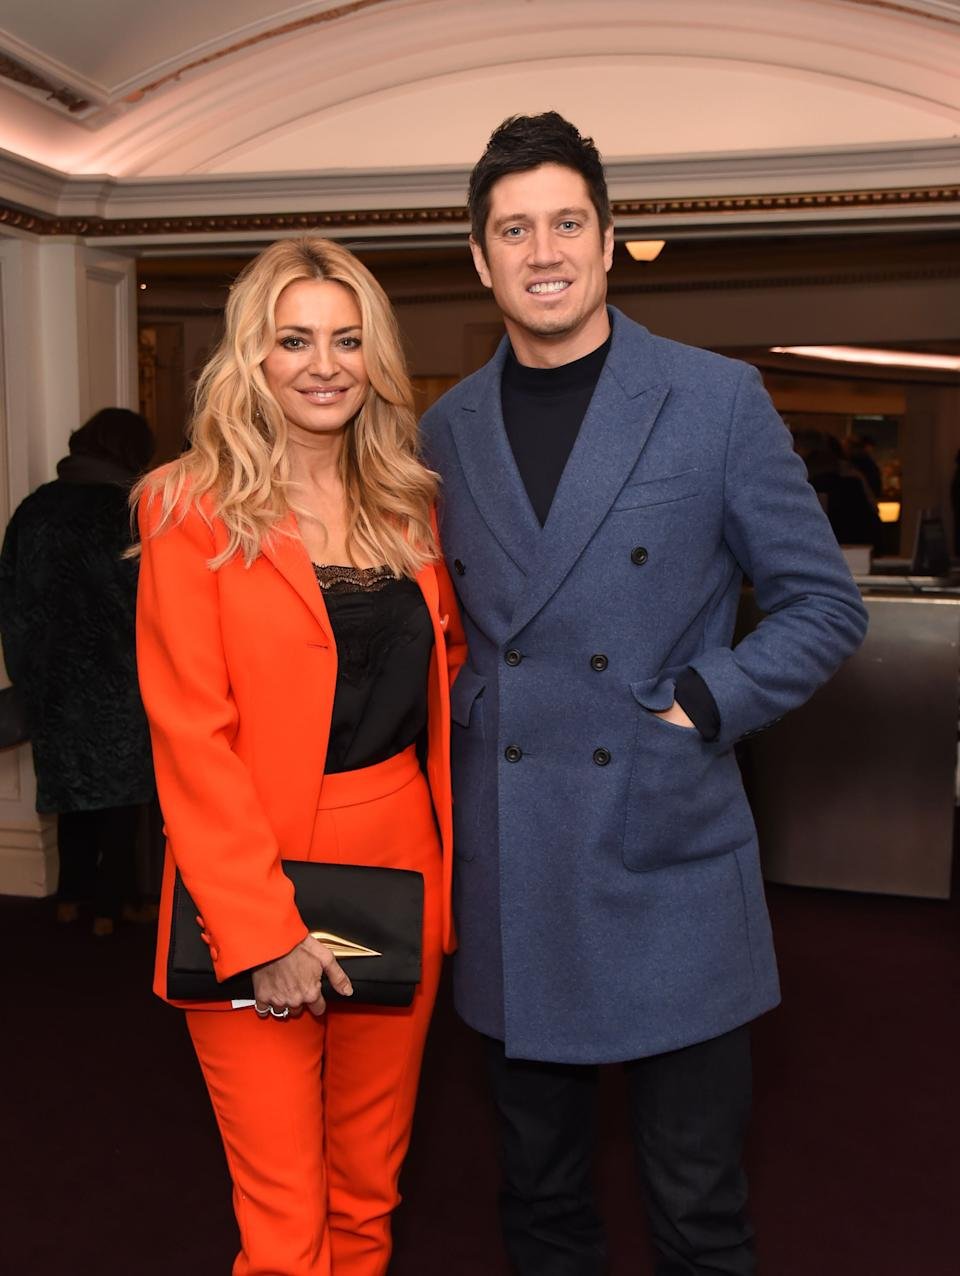 The couple are keen to do more TV work together (Photo: David M. Benett via Getty Images)